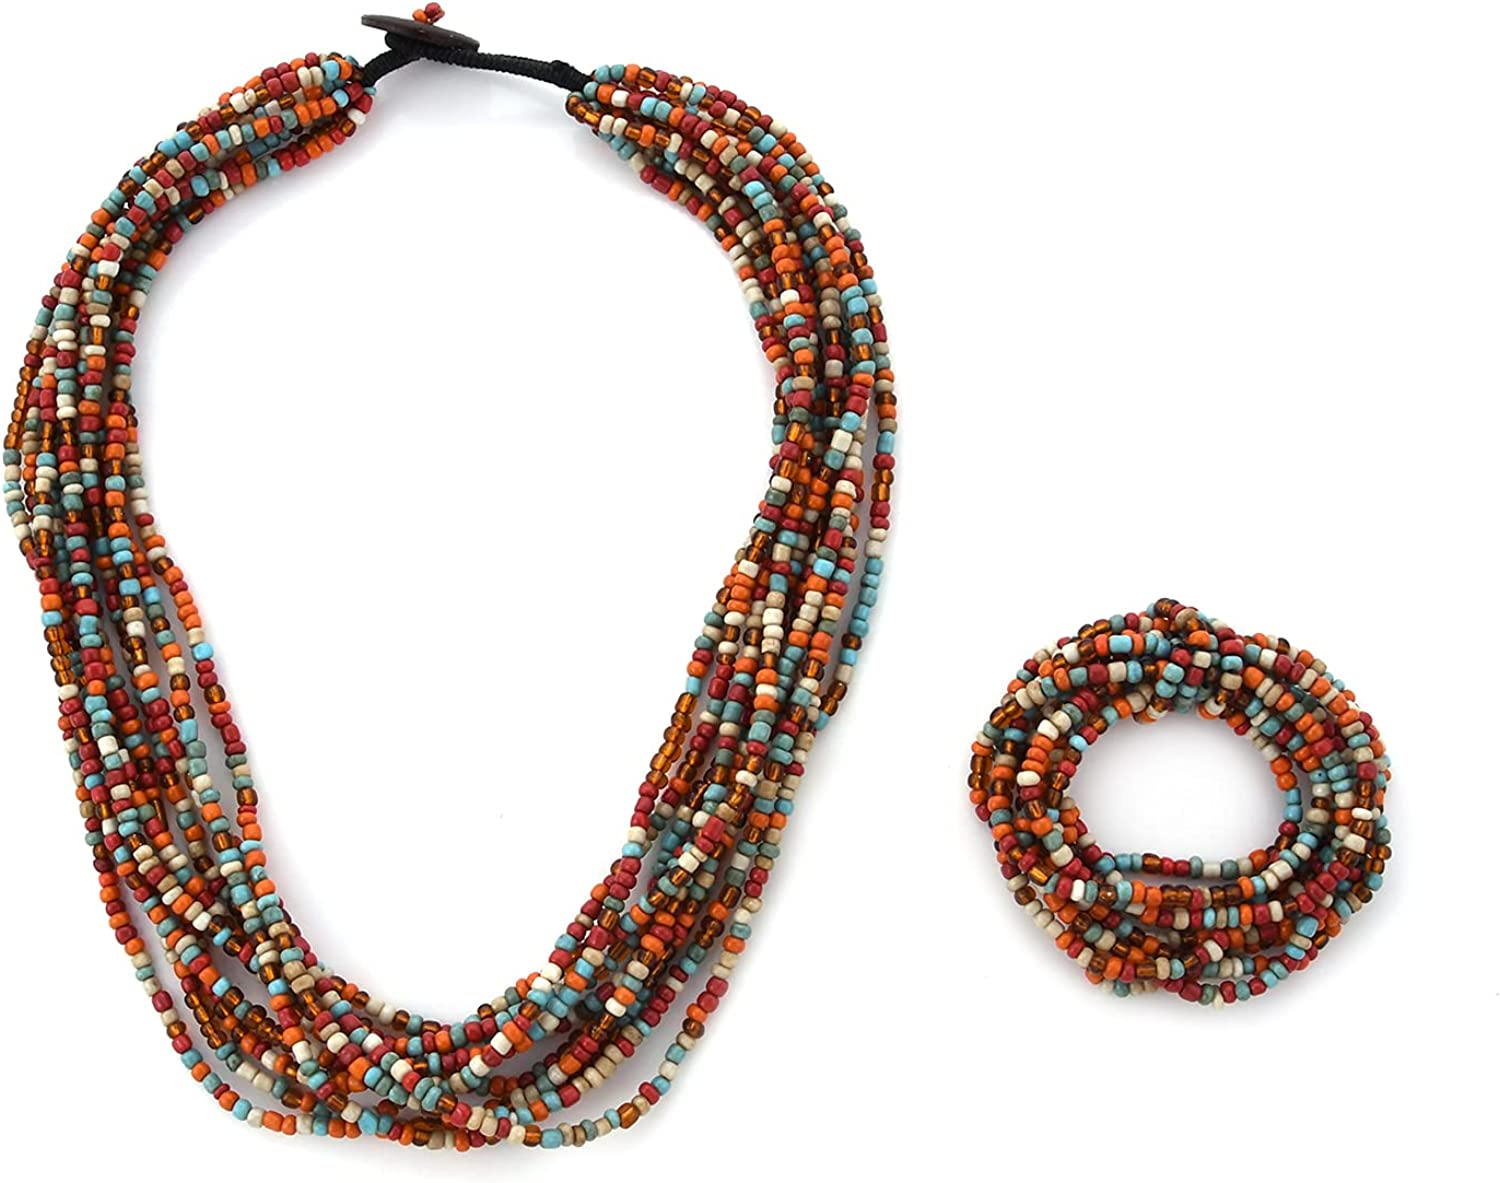 Bracelet Seed Bead Multi Strand Necklace 36 Inch Set Gifts Jewelry